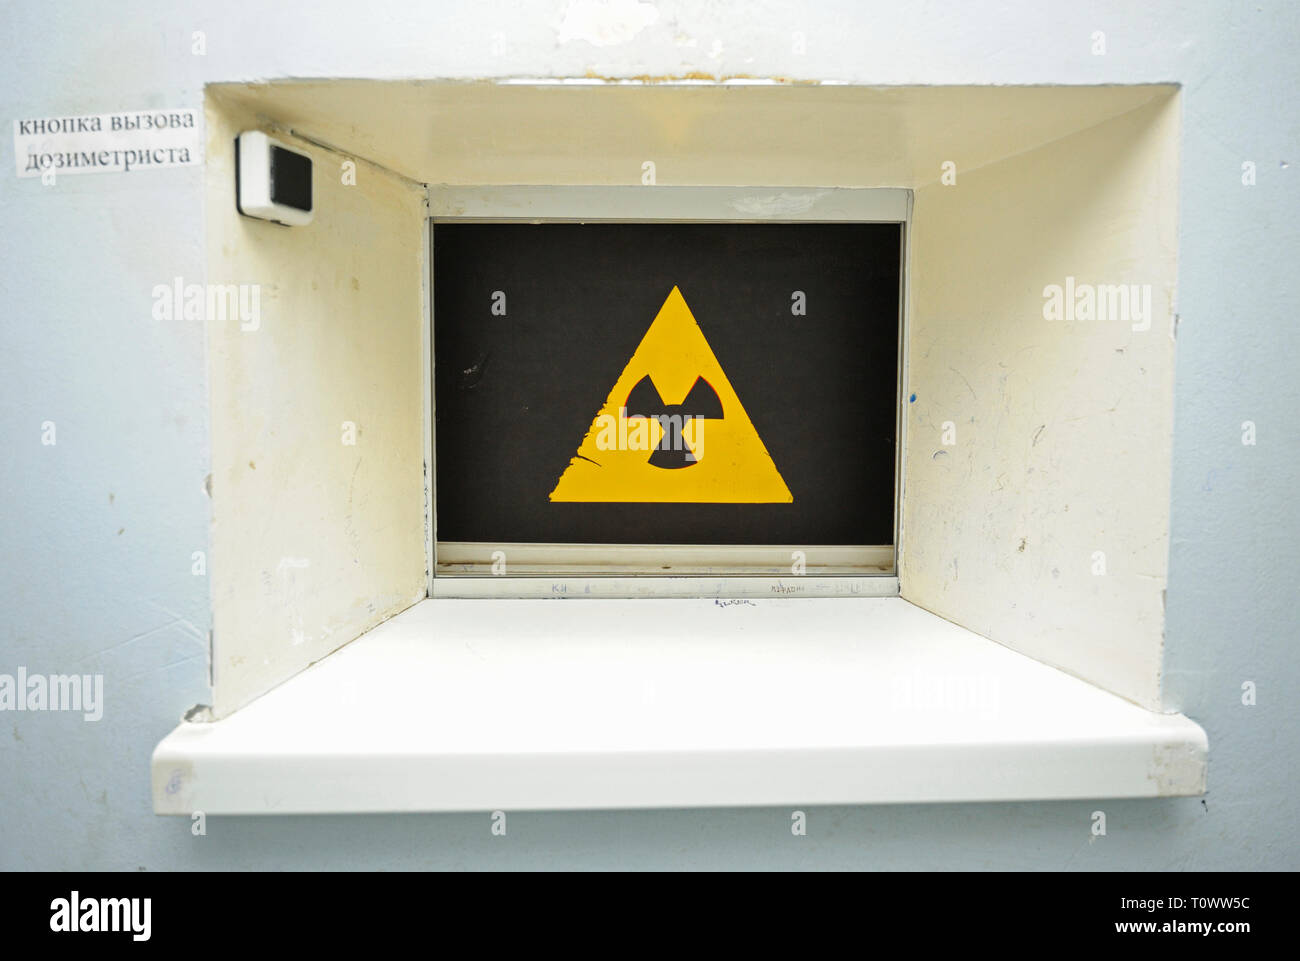 Radiation hazard sign on a window of the radiation control post situated at a passageway of Chernobyl Nuclear Power Plant - Stock Image